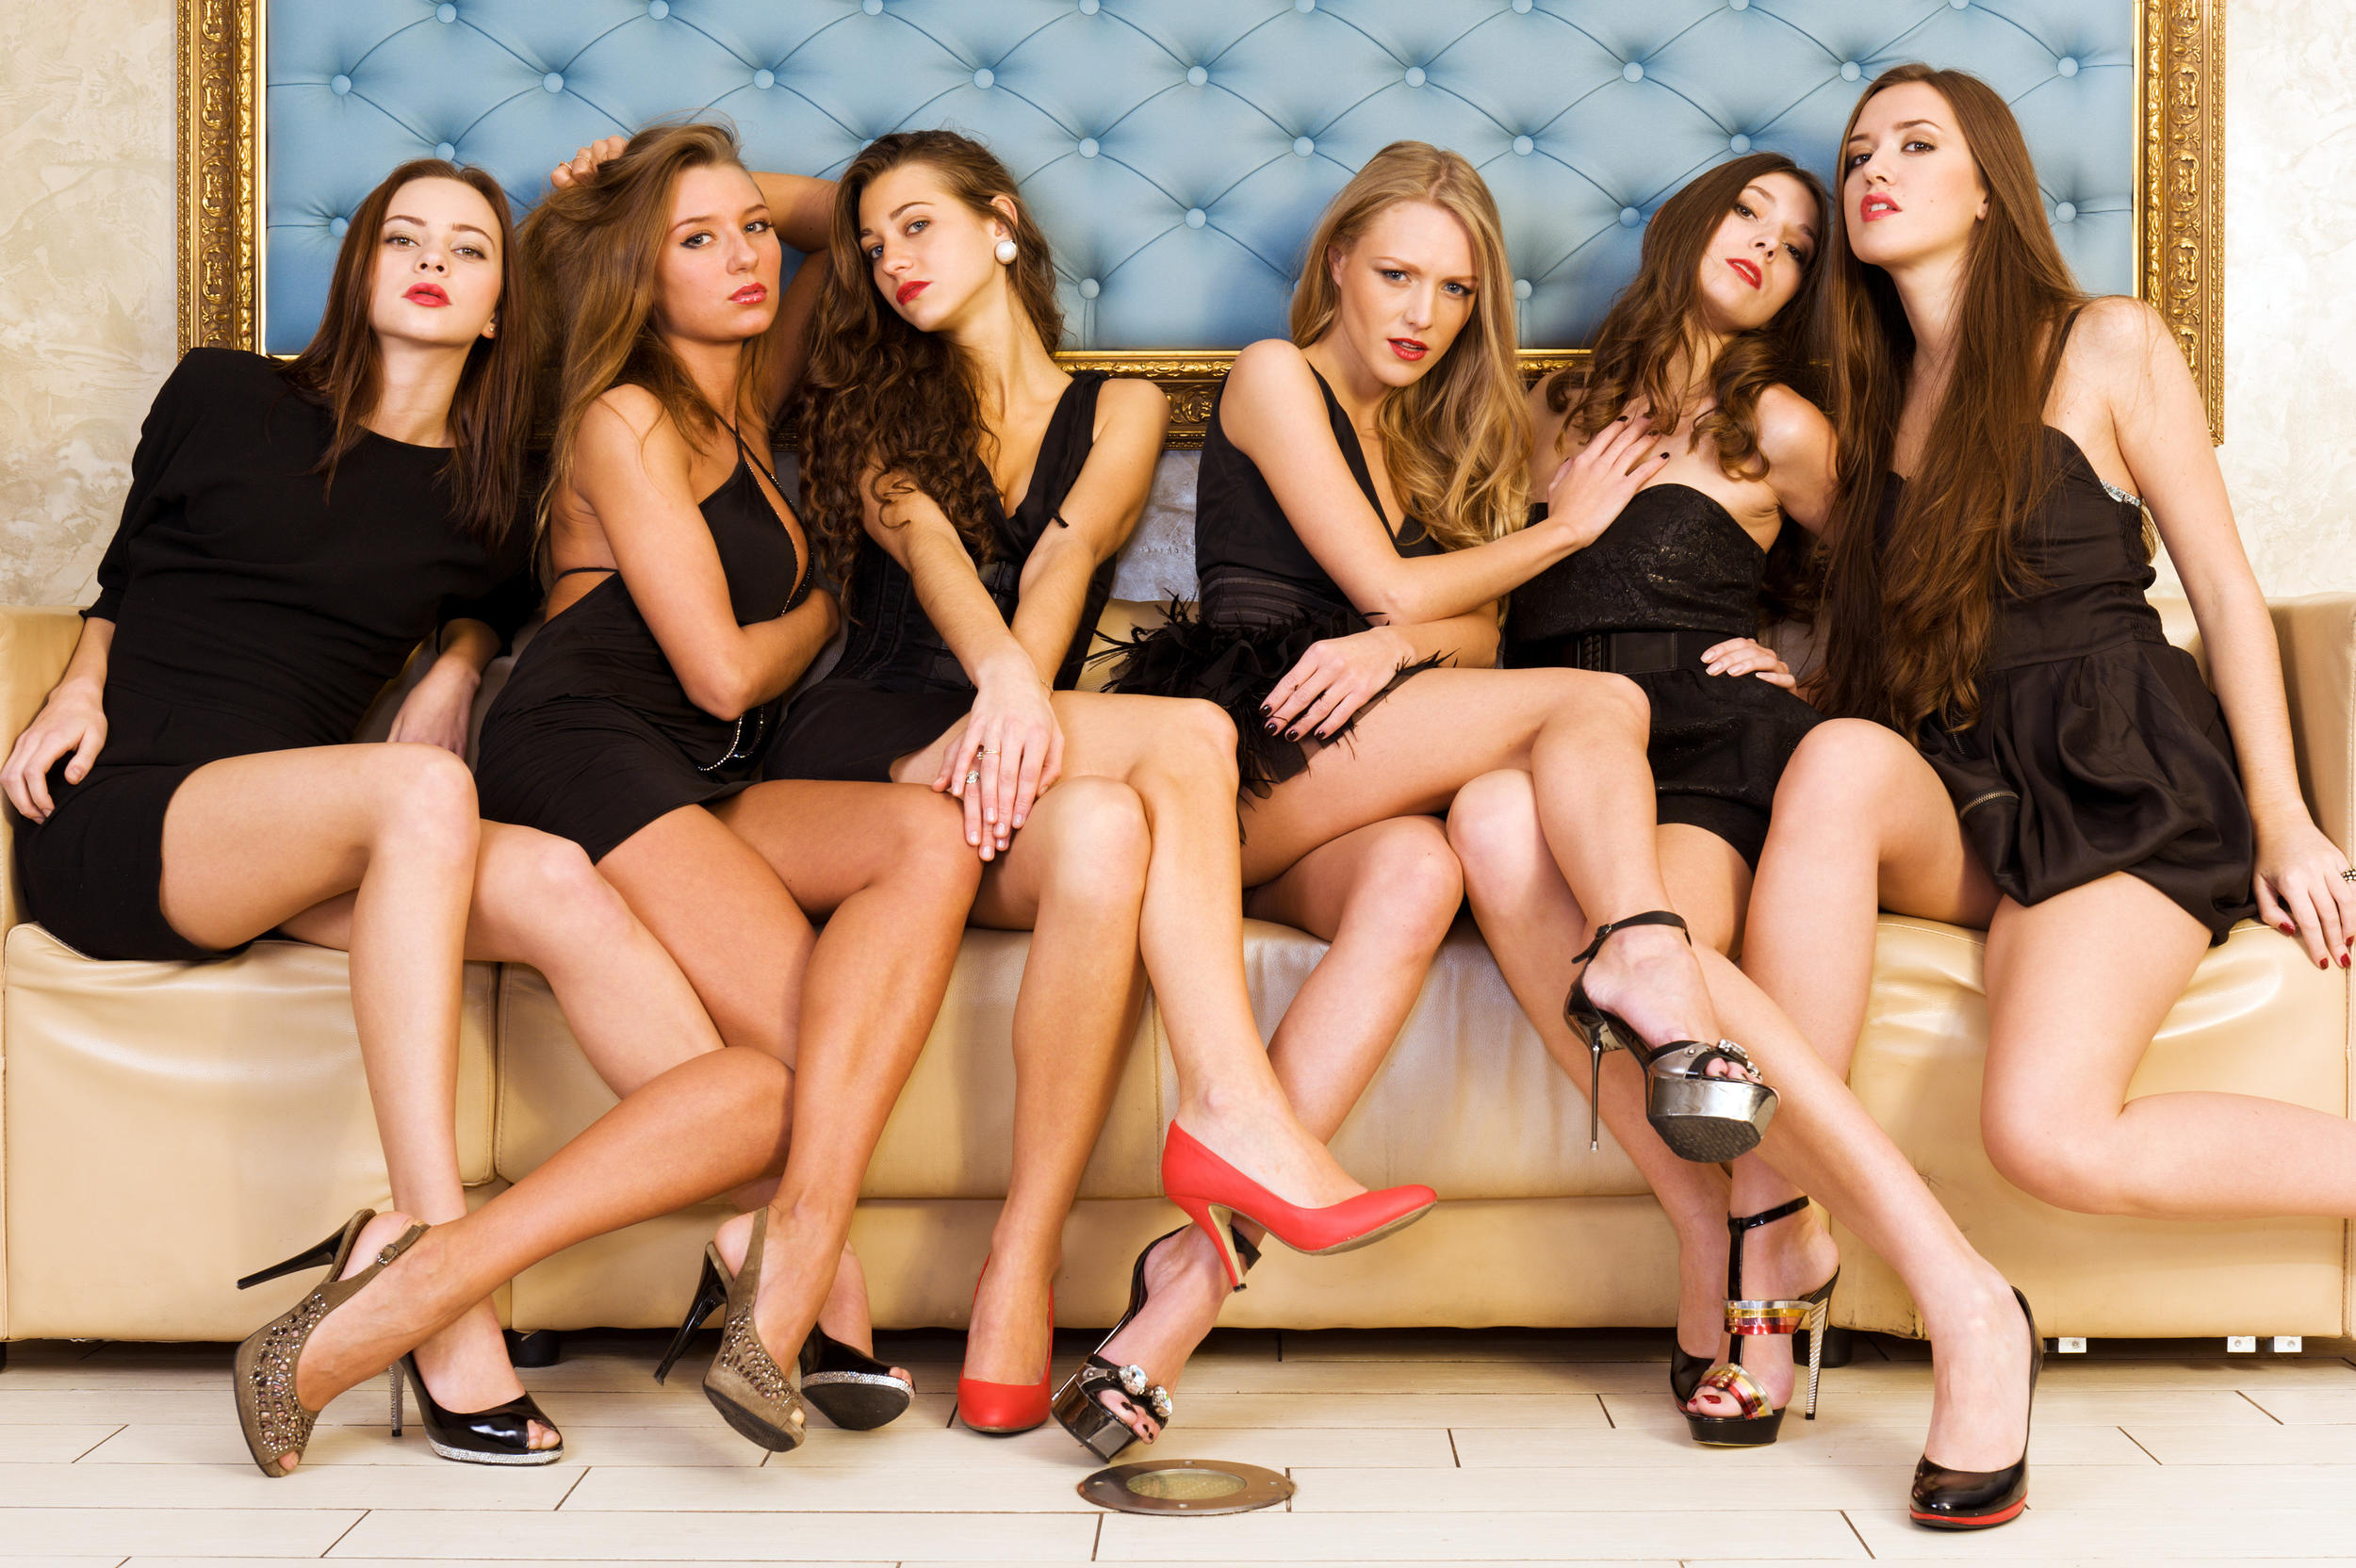 Lesbian group of moscow, naked girls on beds